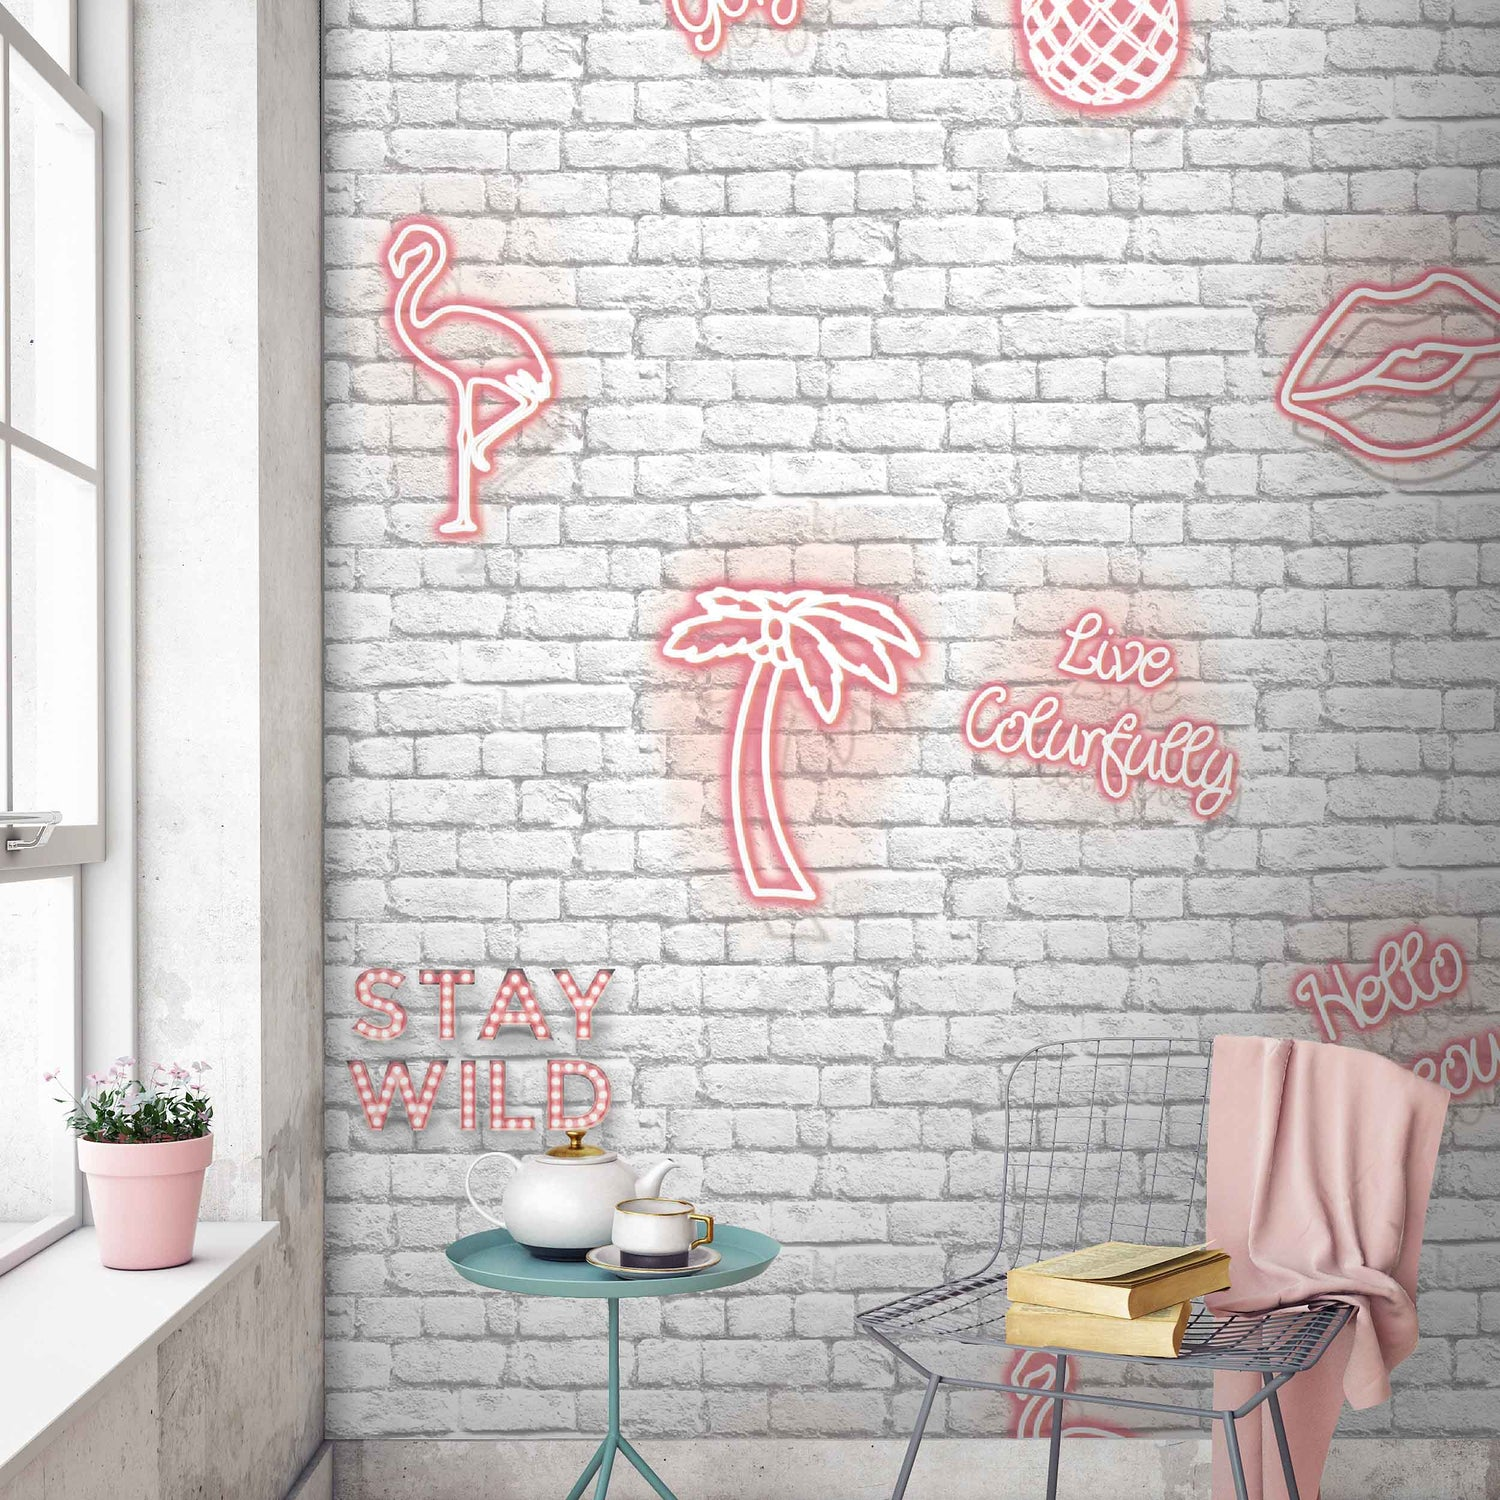 Fantastic Wallpaper Marble Neon - WM-058_STAY_WILD_PINK0_1500x1500  Collection_546727.jpg?v\u003d1522822883